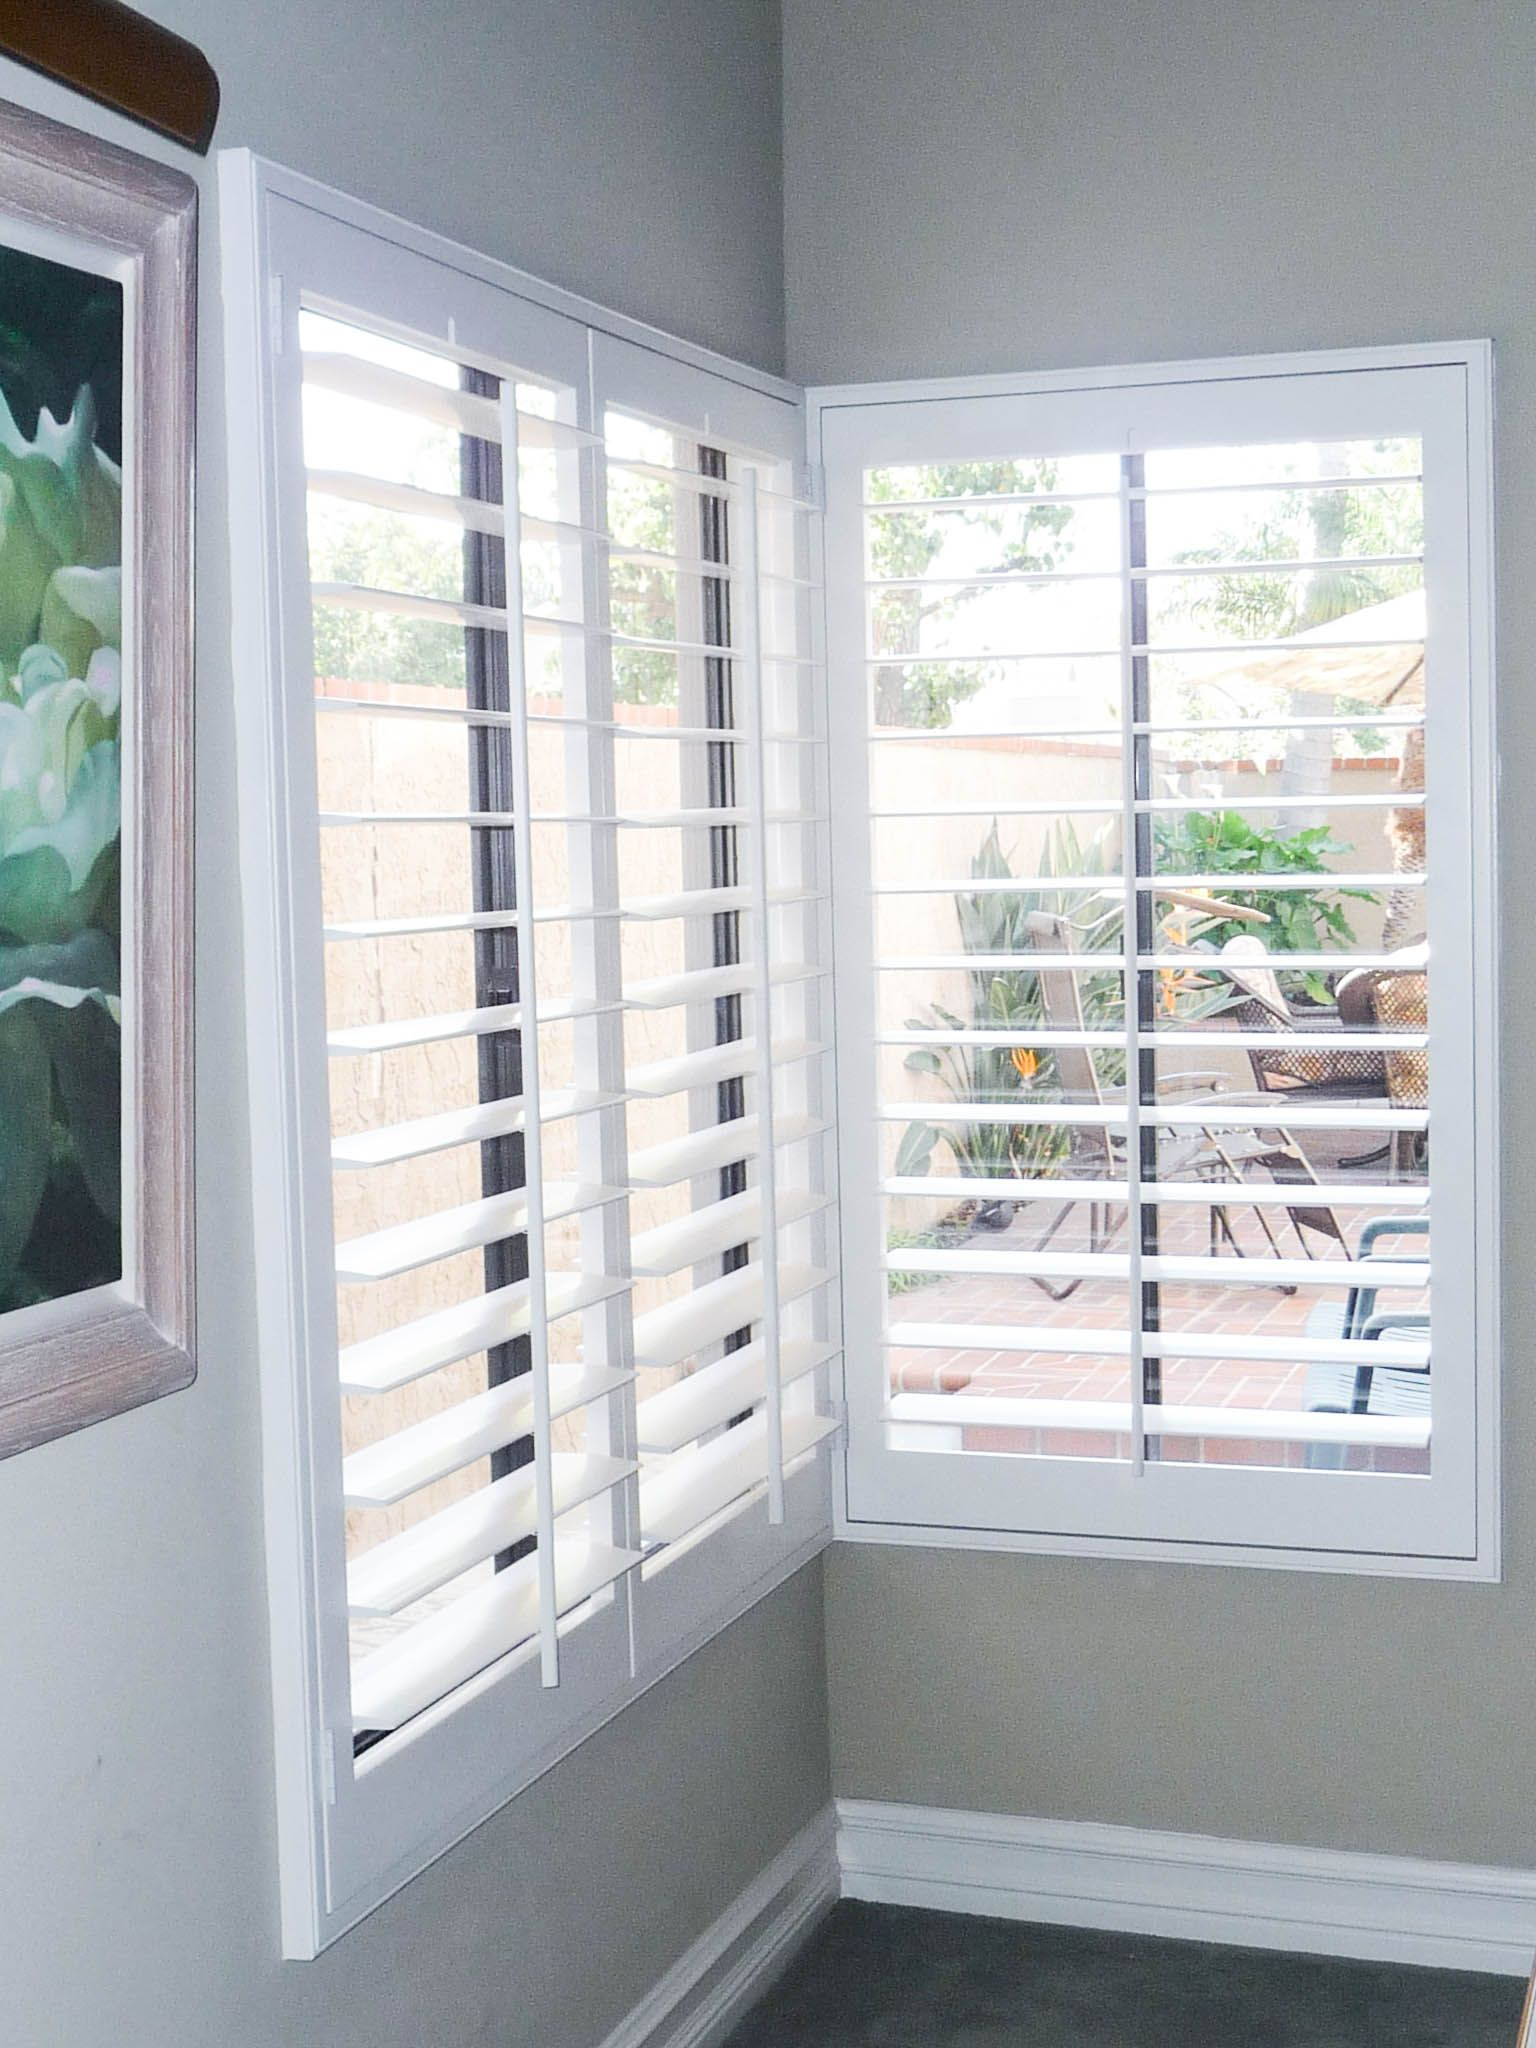 Check Out These Bright White Interior Plantation Shutters With 4 5 Louvers And Tilt Rods Installed On A Corner Window By The Clic Team